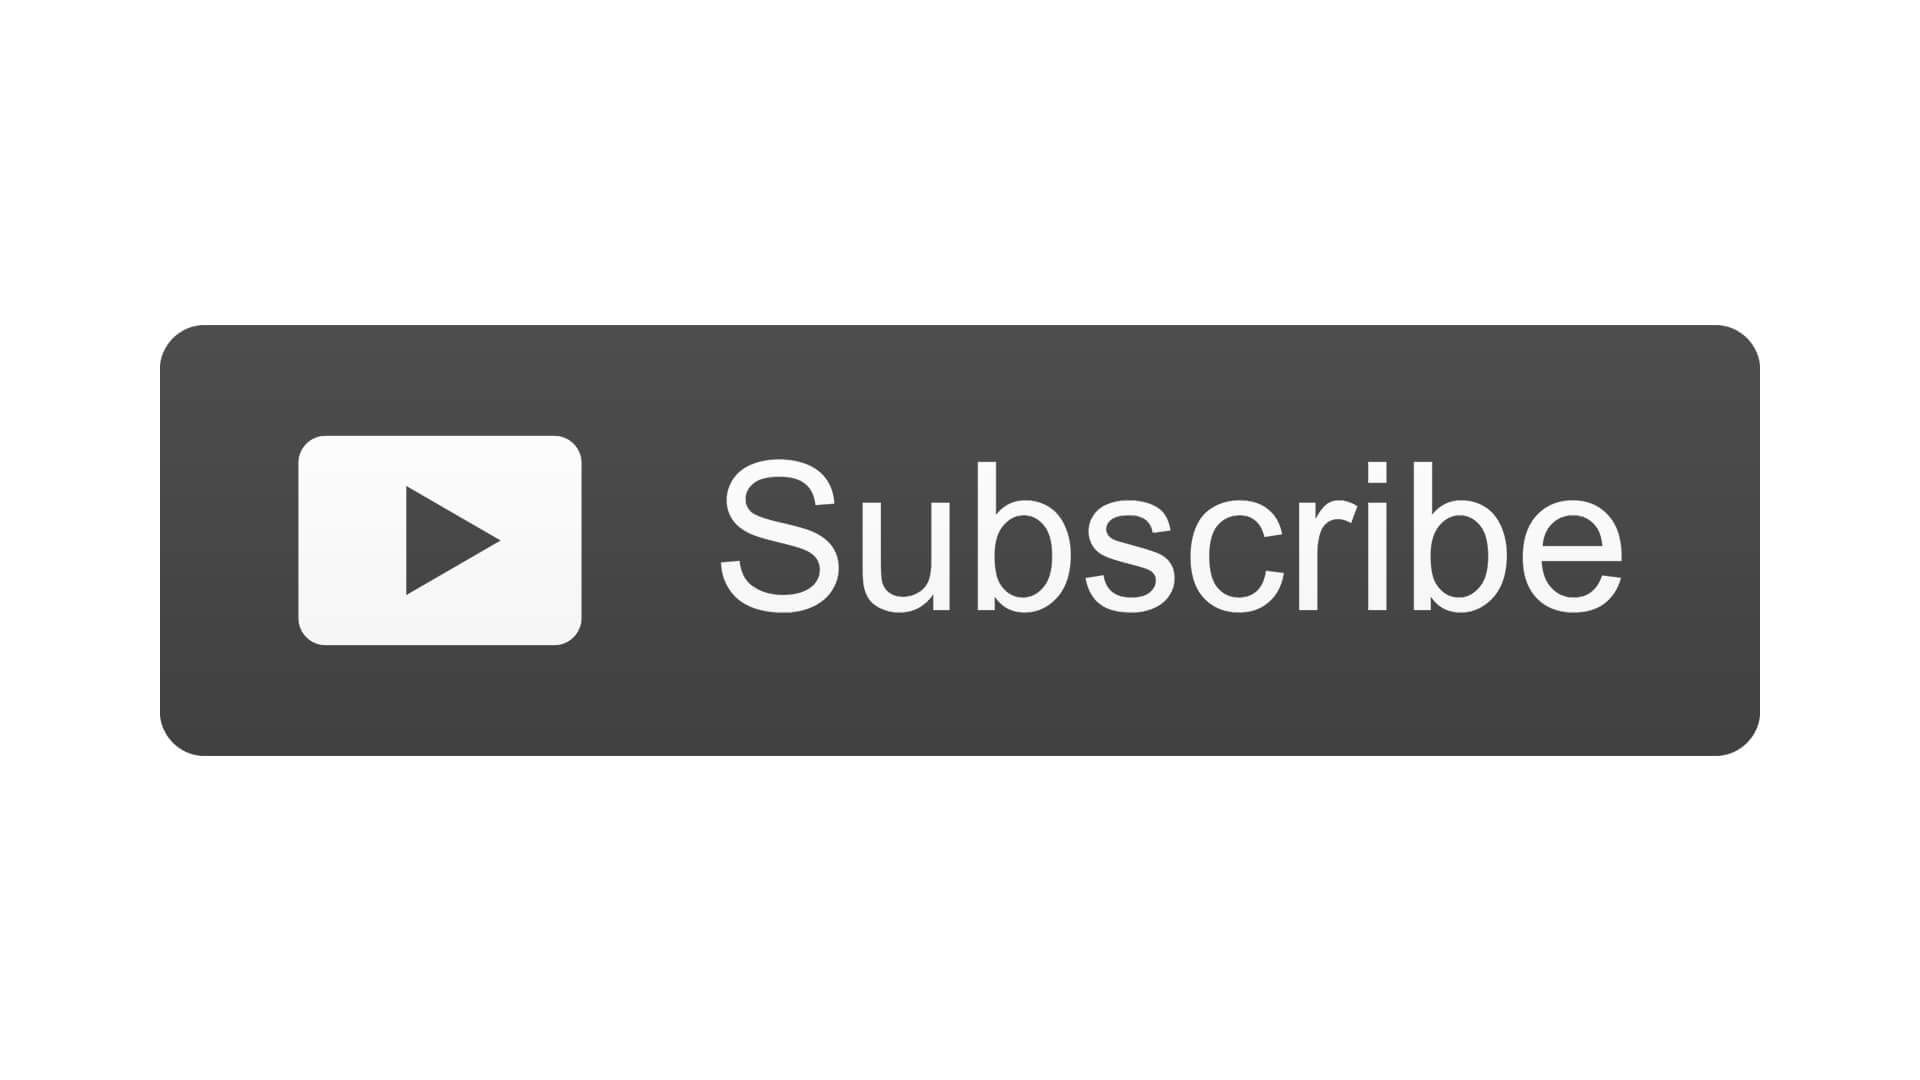 Youtube Subscribe Button Free Download 1 By Alfredocreates Com